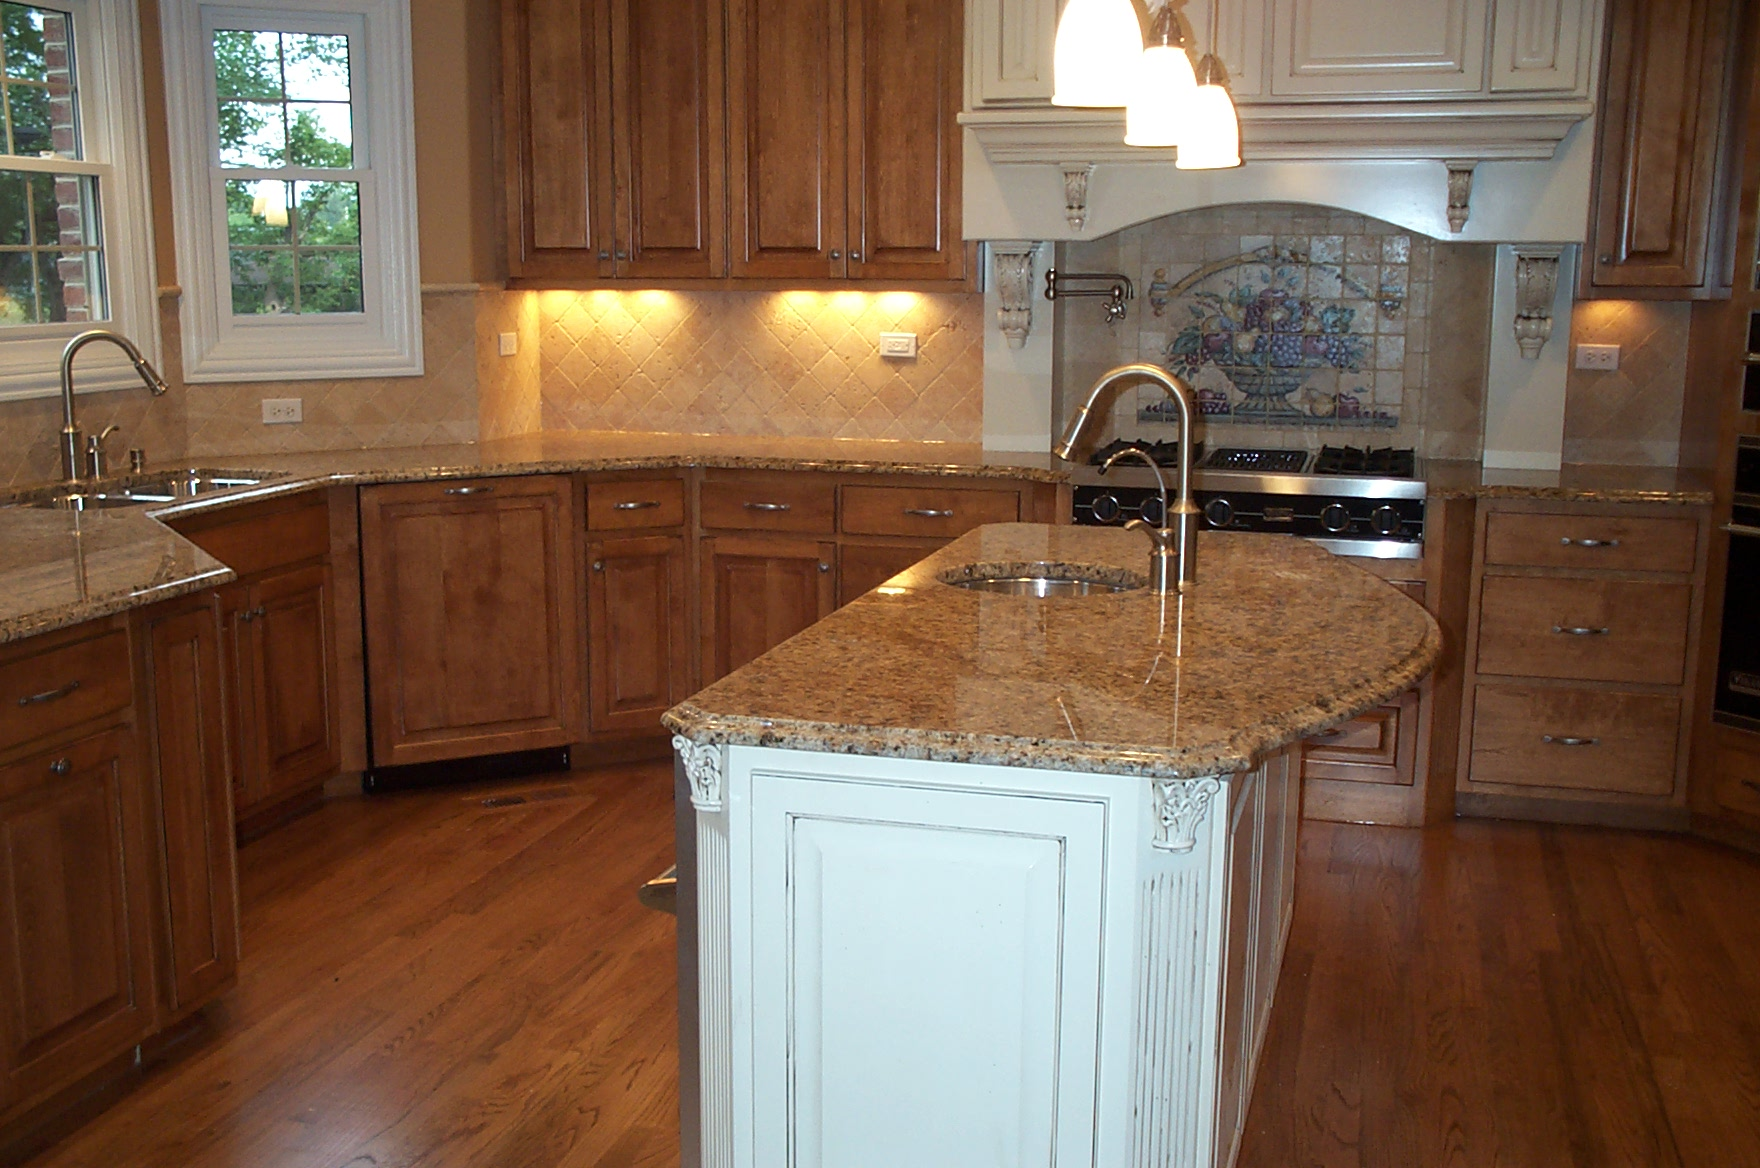 Chicago IL Bathroom Kitchen Remodeling, Hardwood Floors ...